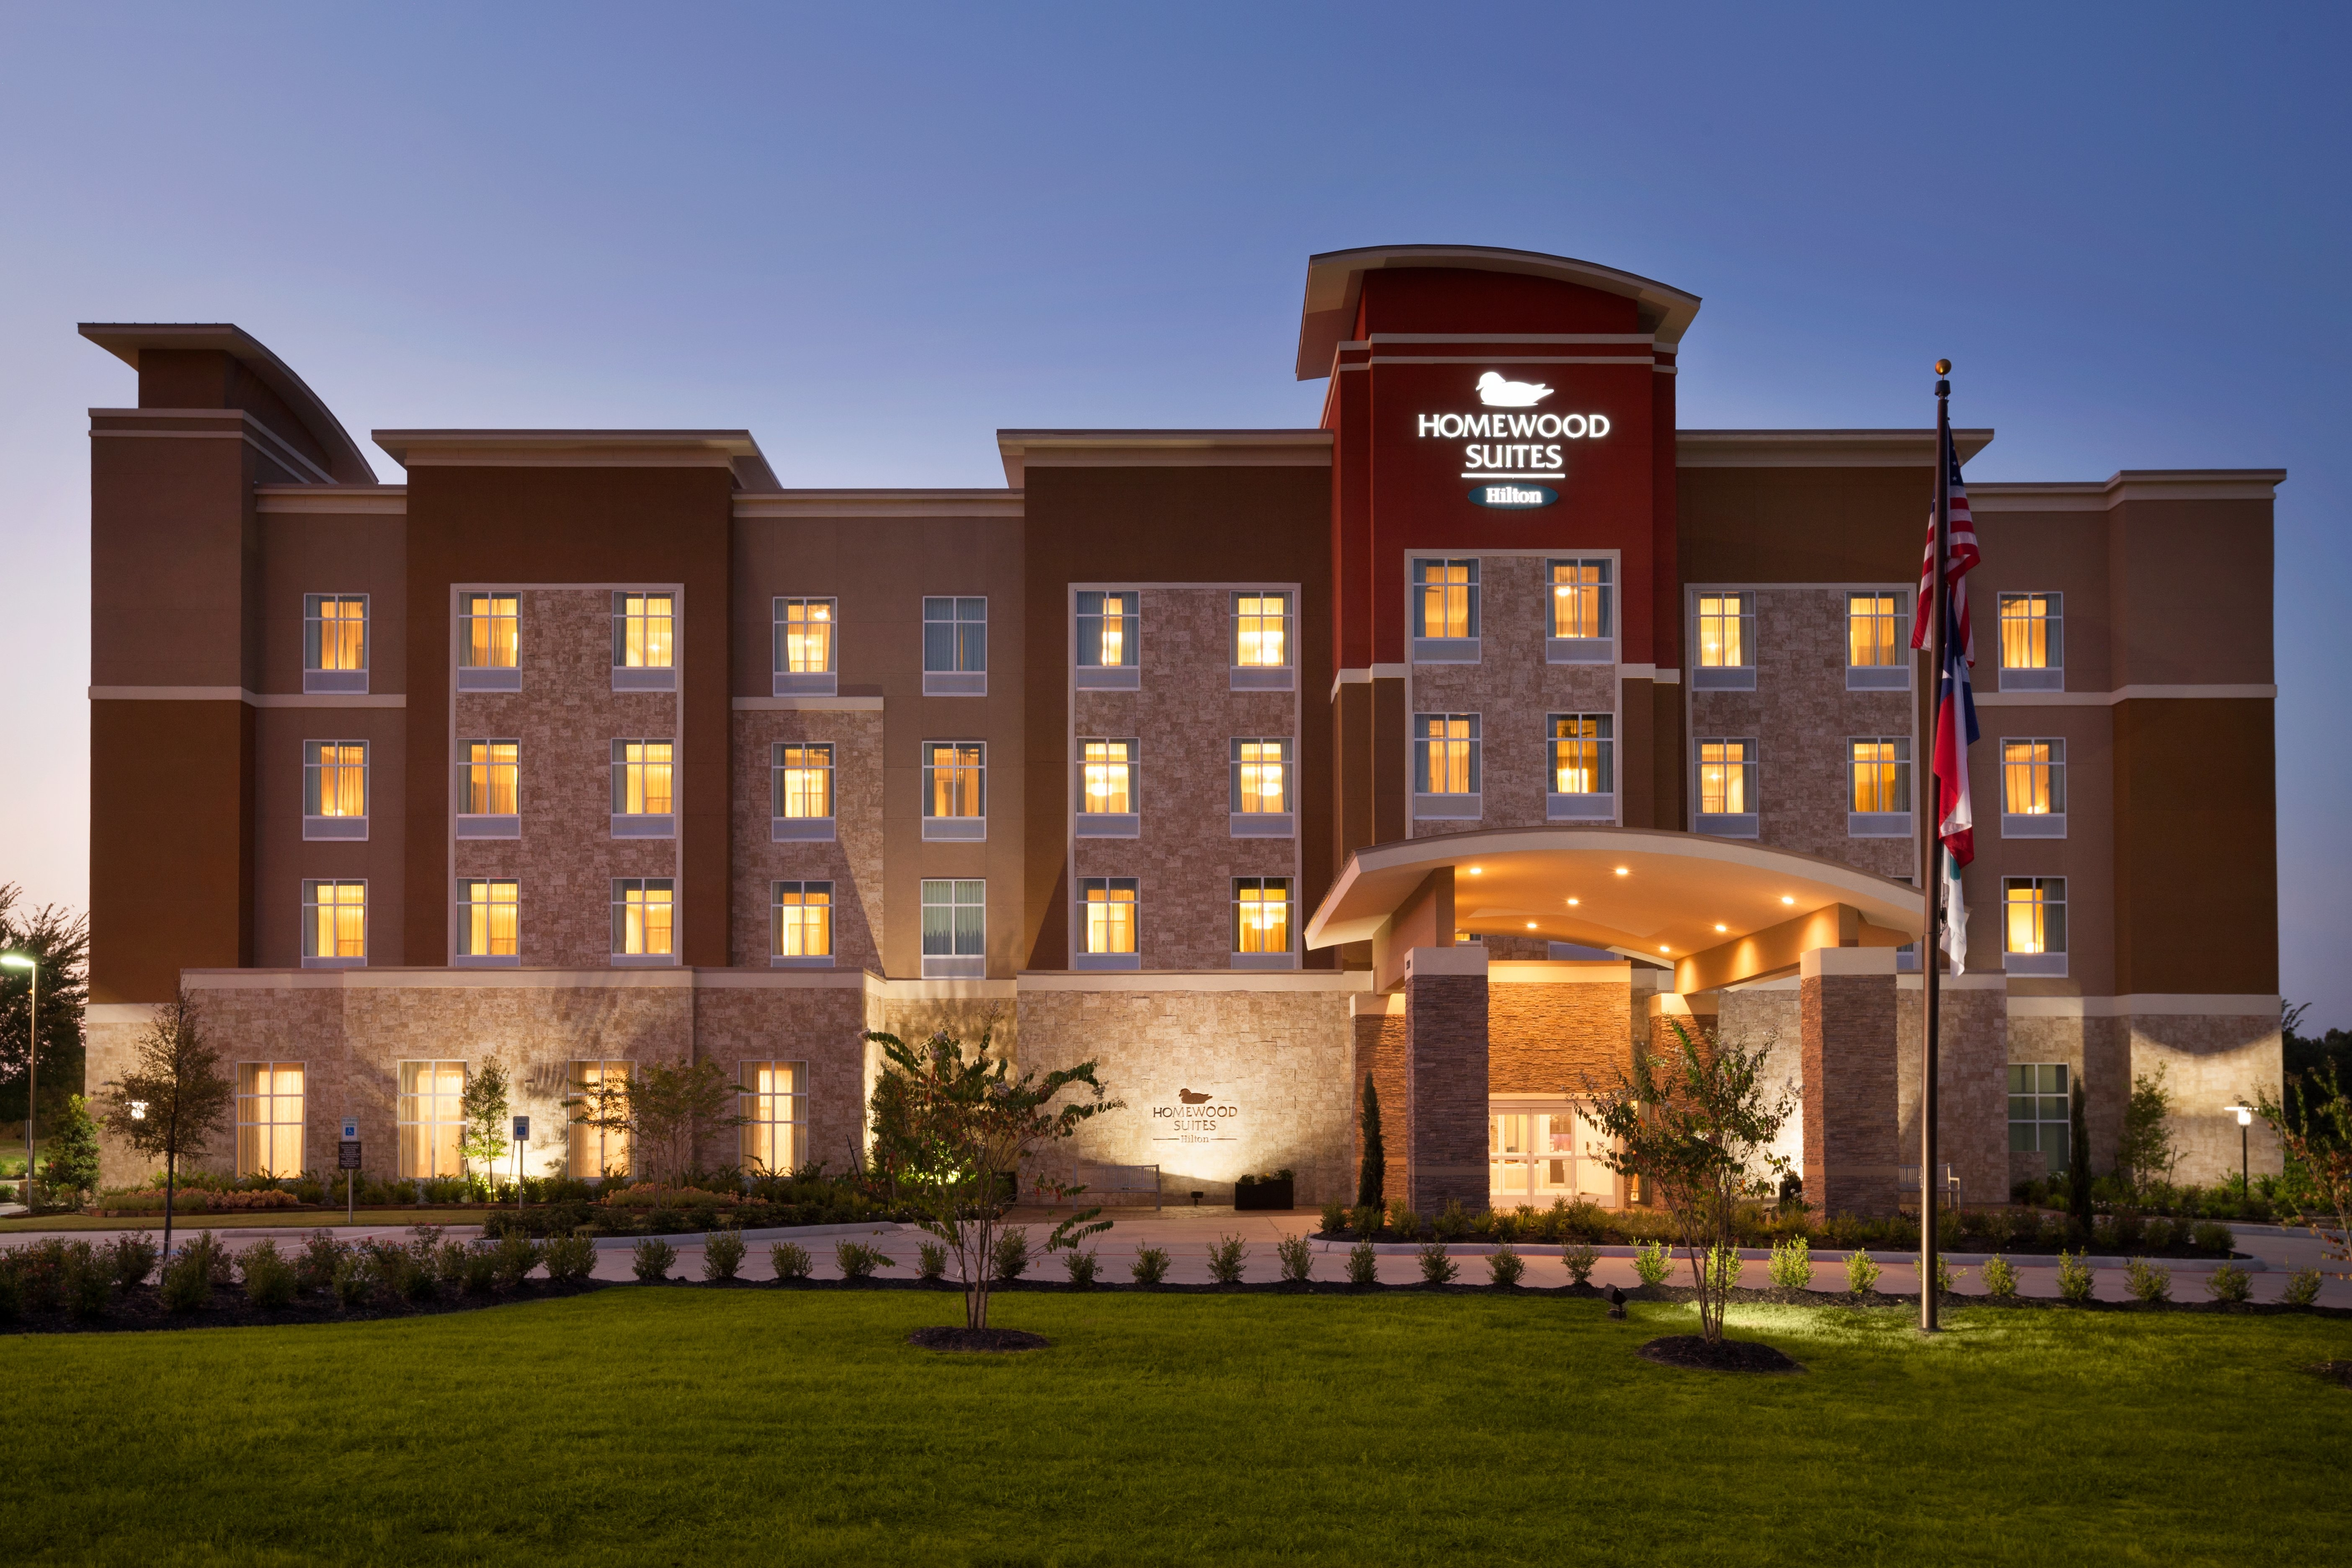 Homewood Suites by Hilton North Houston/Spring image 20